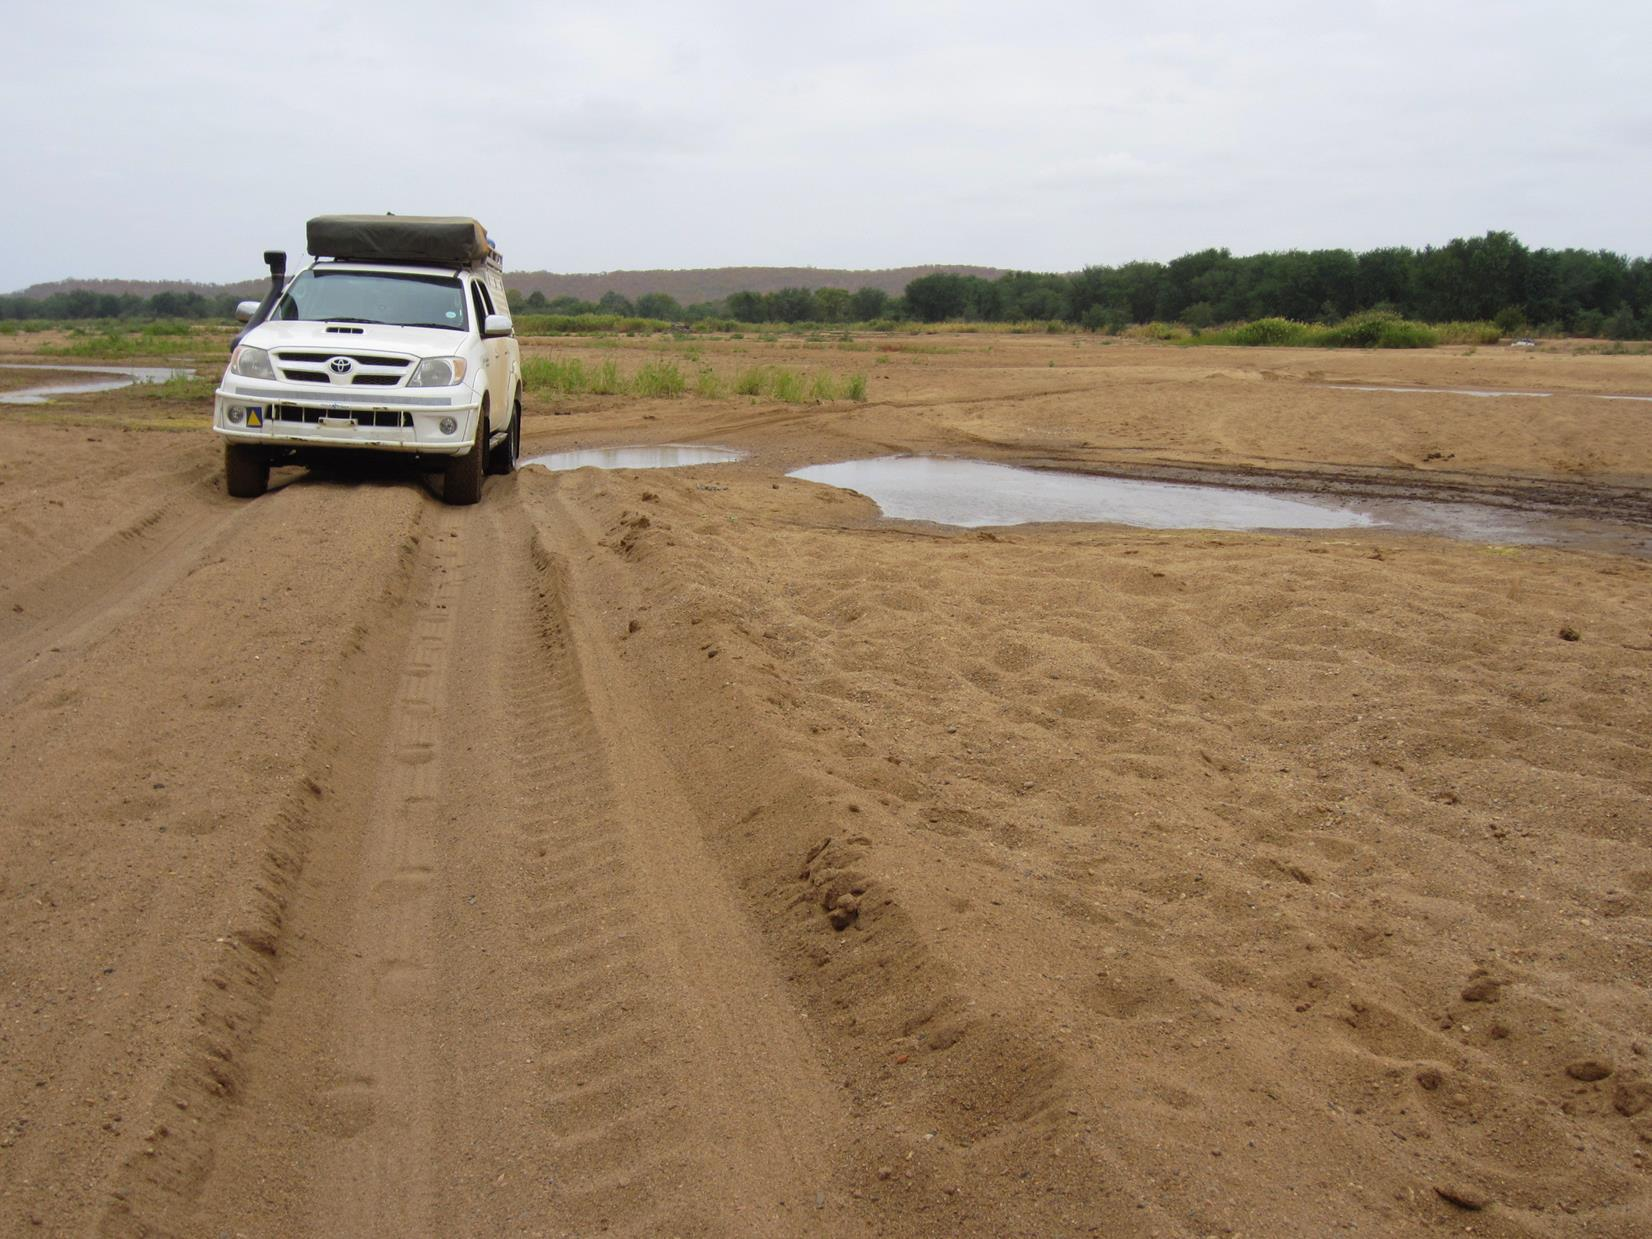 Crossing the dry Limpopo Riverbed.